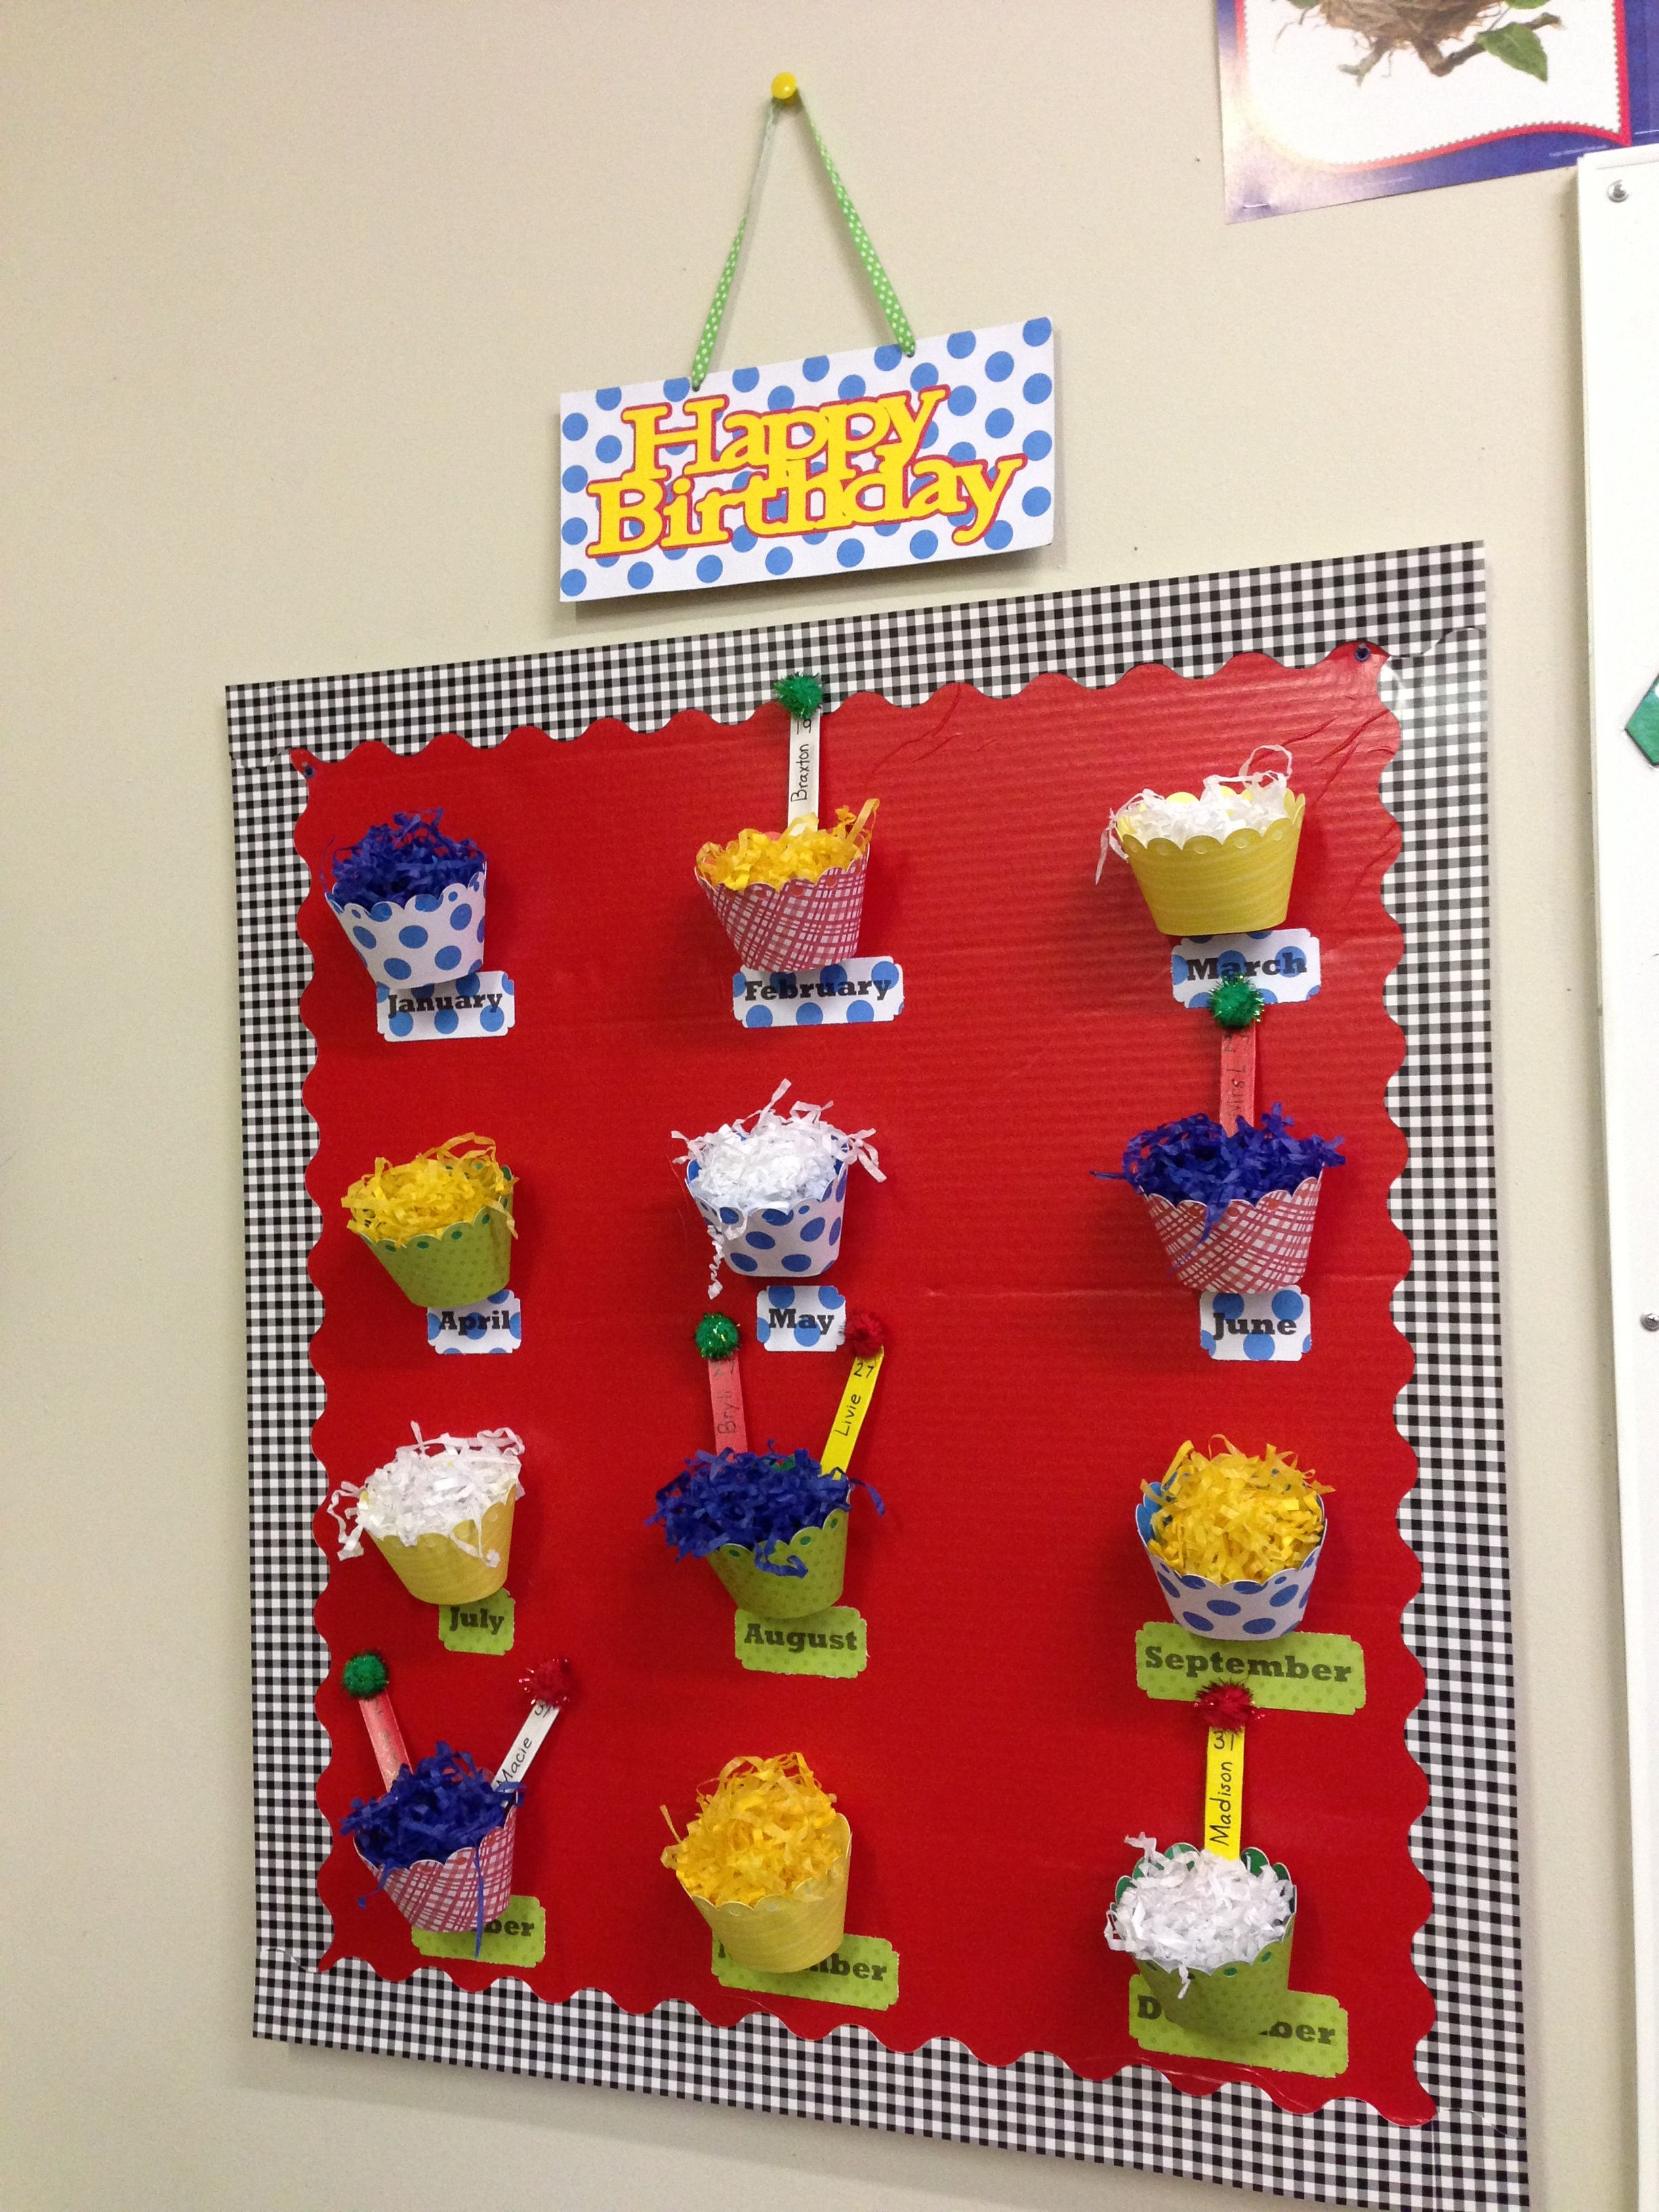 Birthday Calendar In Kindergarten : Preschool classroom birthday display board using primary